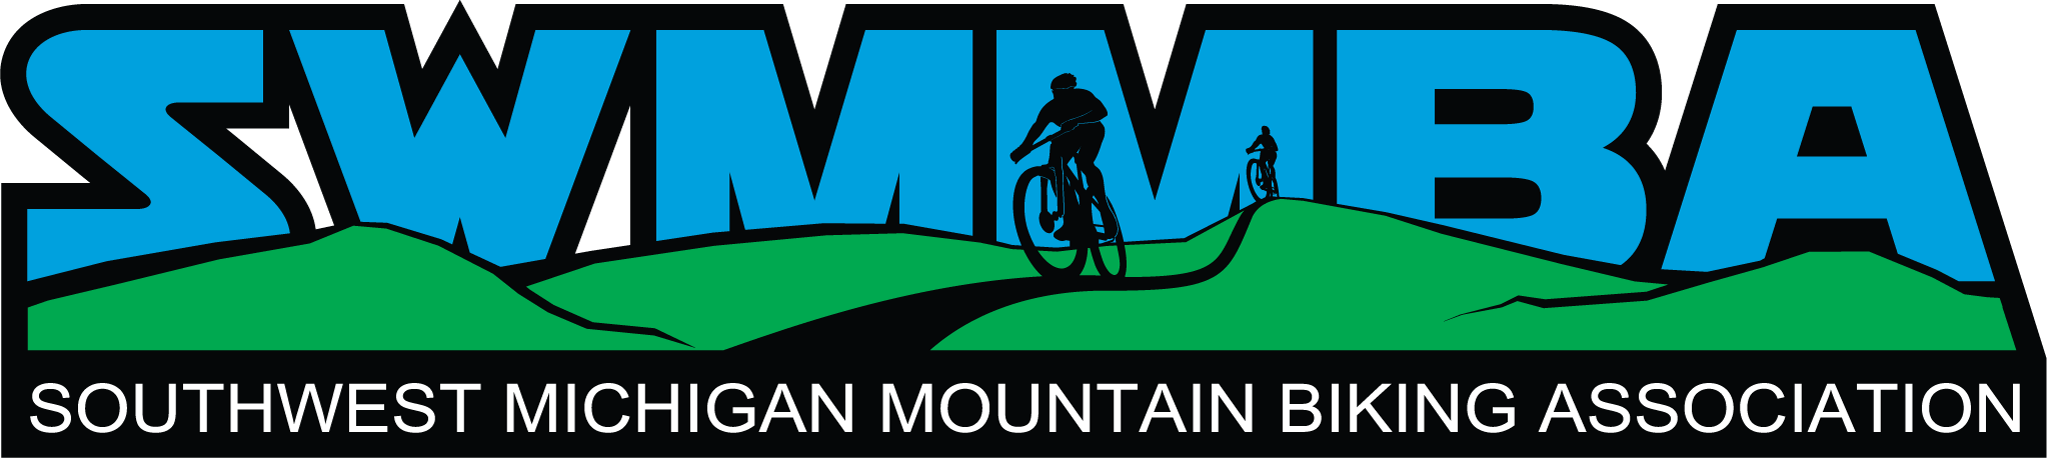 Southwest Michigan Mountain Biking Association